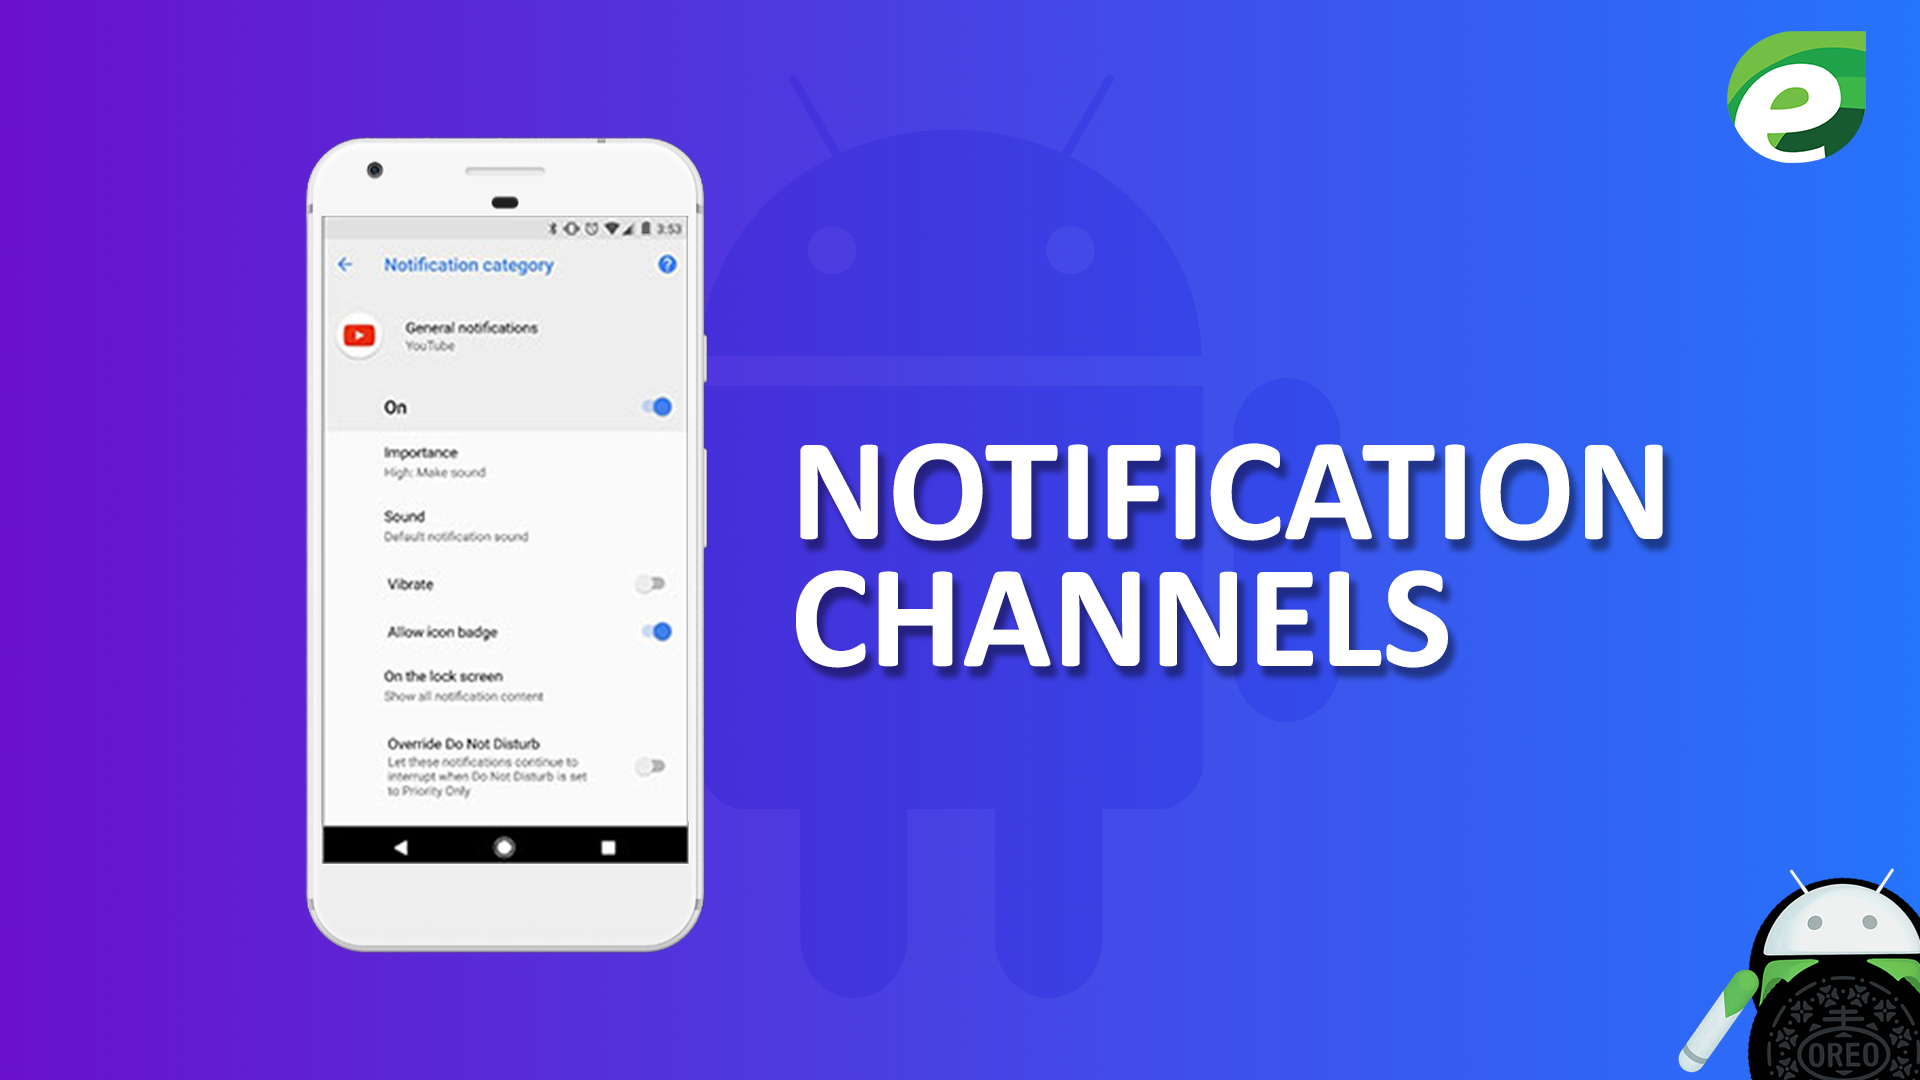 Android oreo- Notification channels